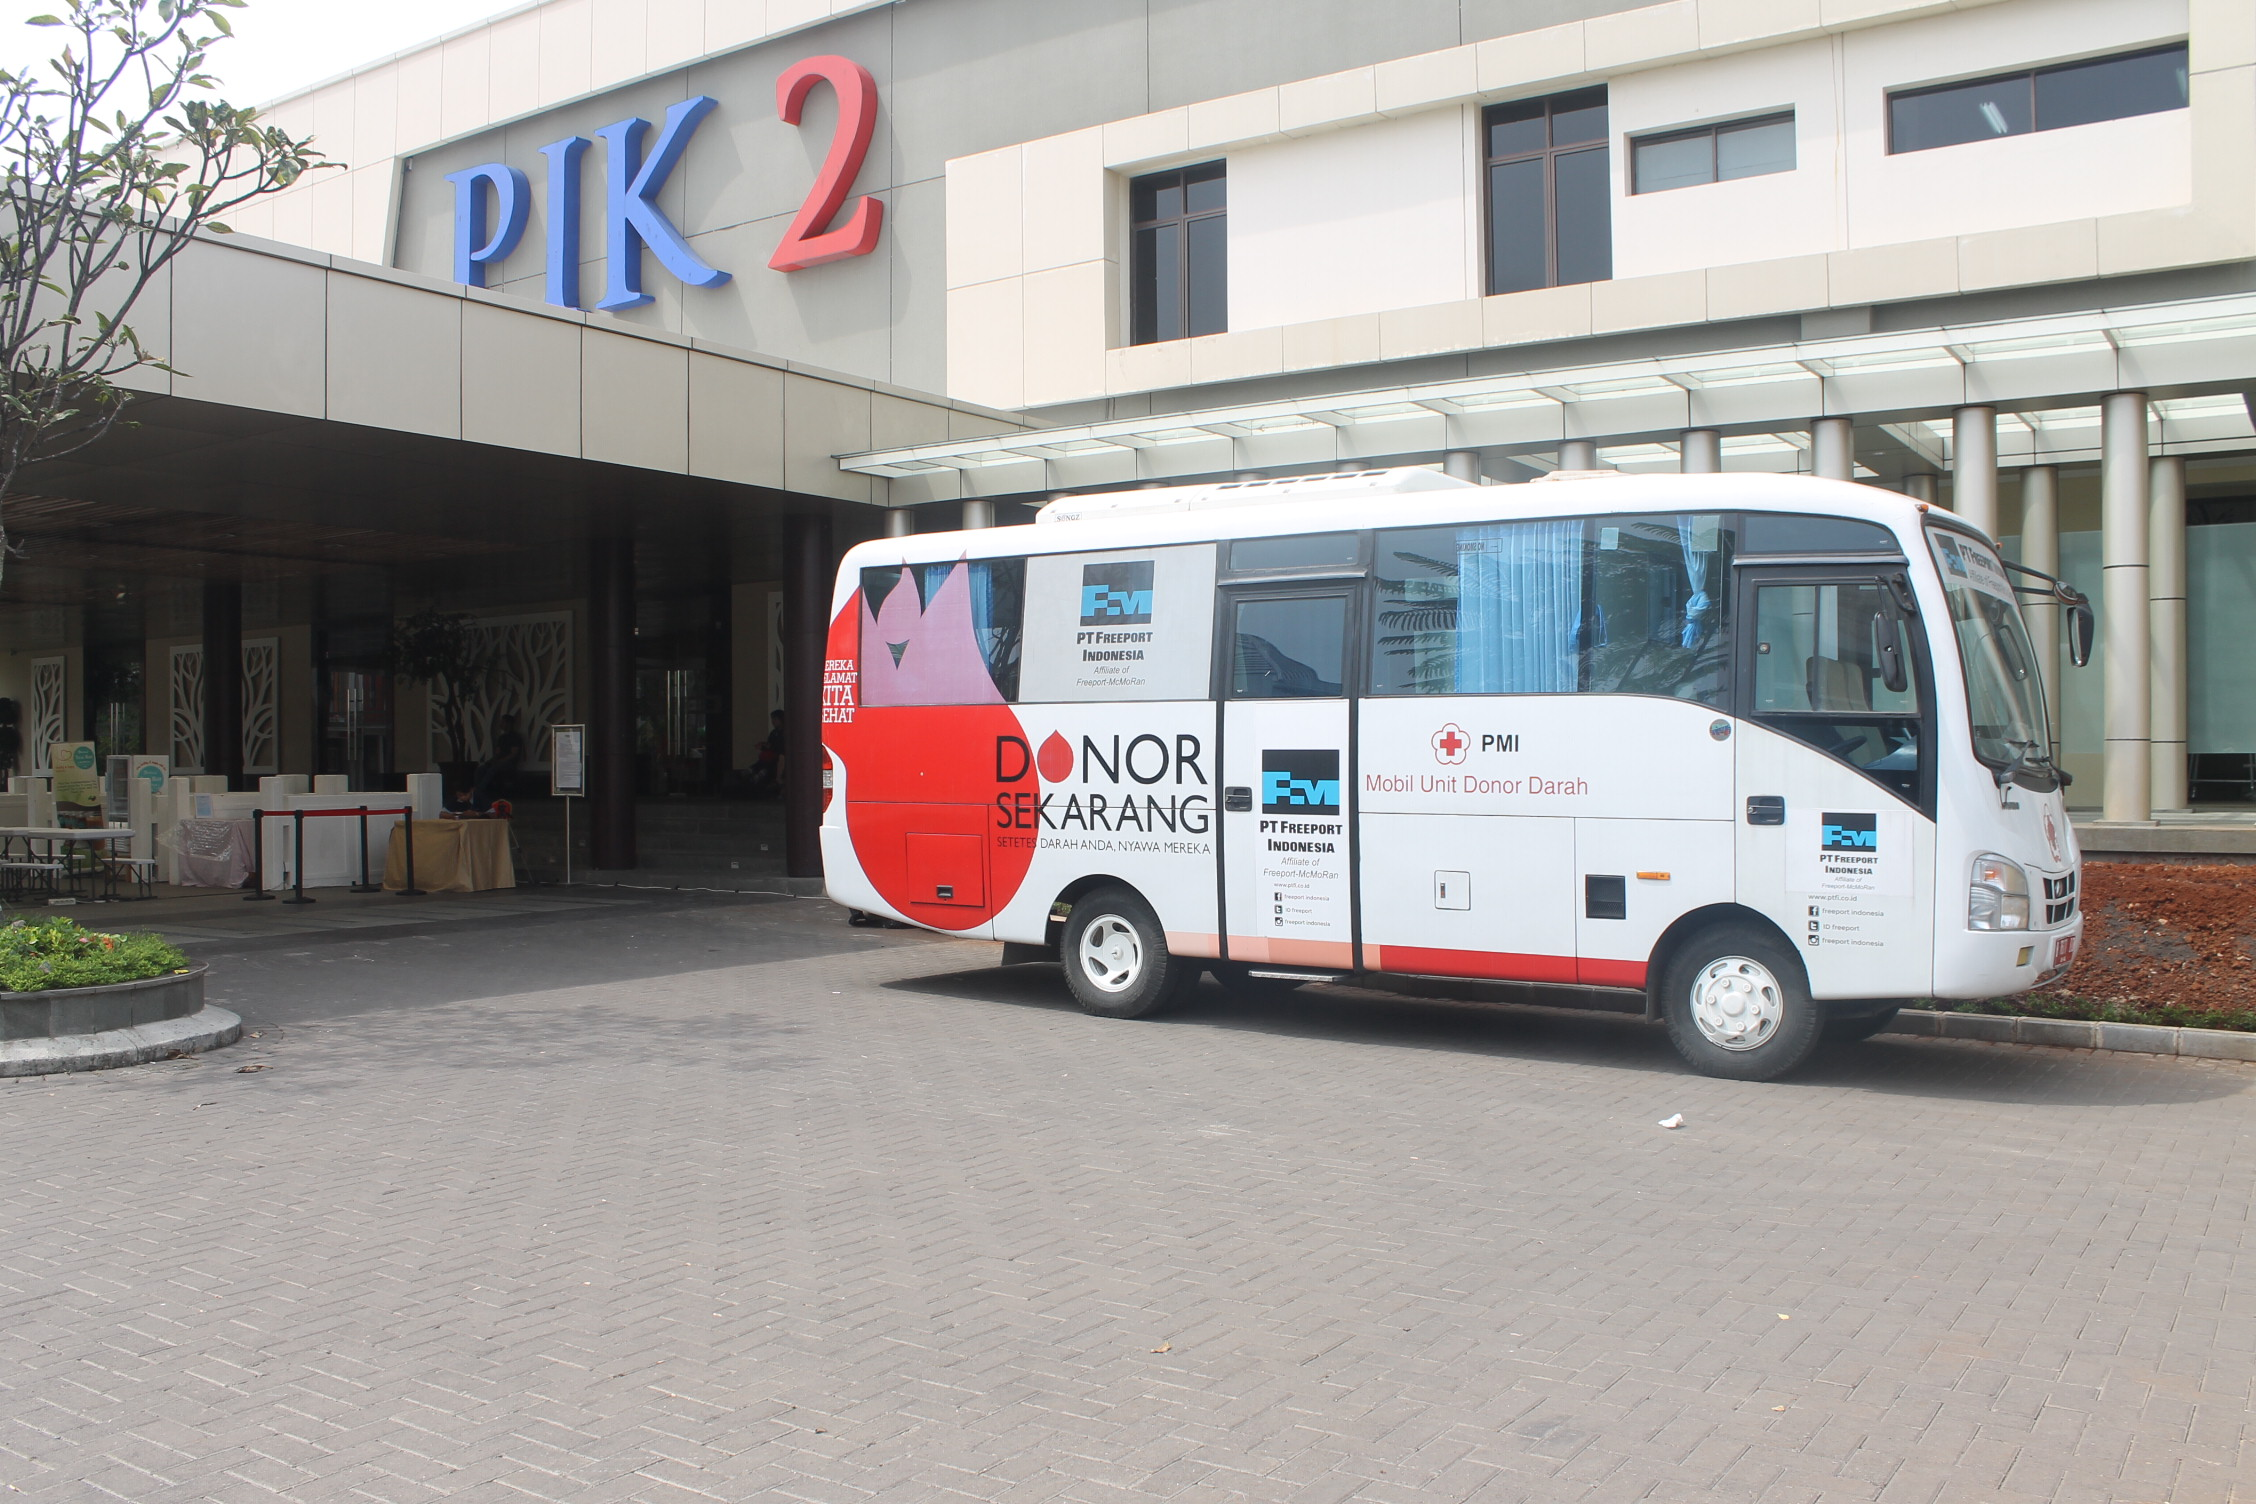 Pik2 Events - PIK 2 Organized a Blood Donation Event